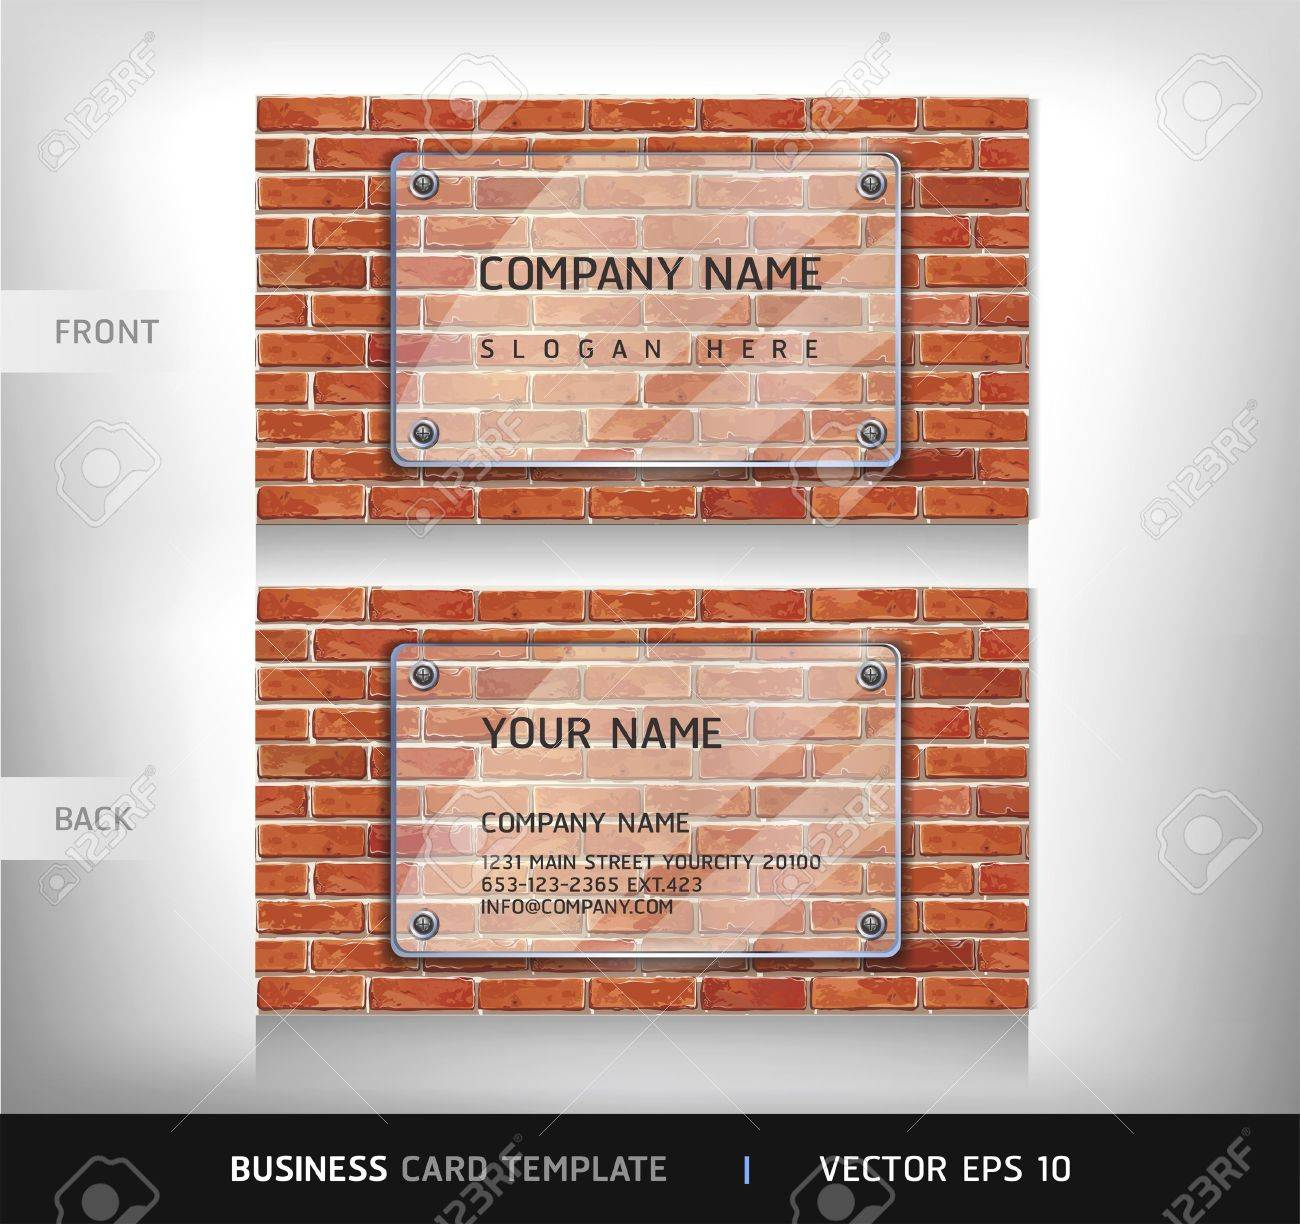 Red Brick Wall Business Card   Vector illustration Stock Vector - 18759069